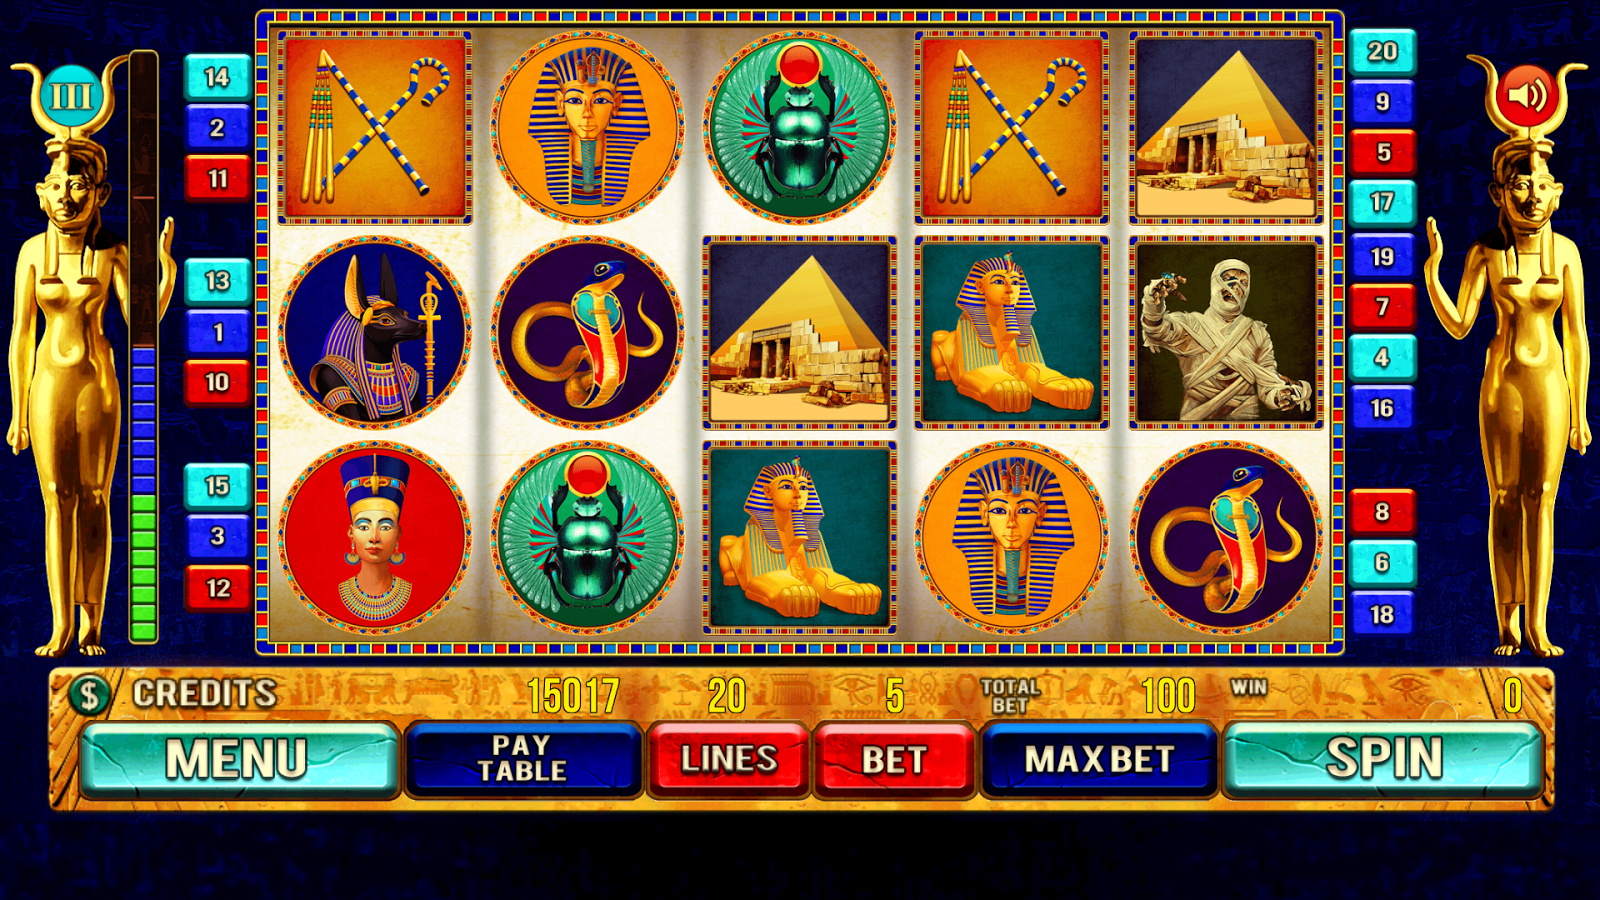 Honey Money Slot Machine - Play for Free in Your Web Browser